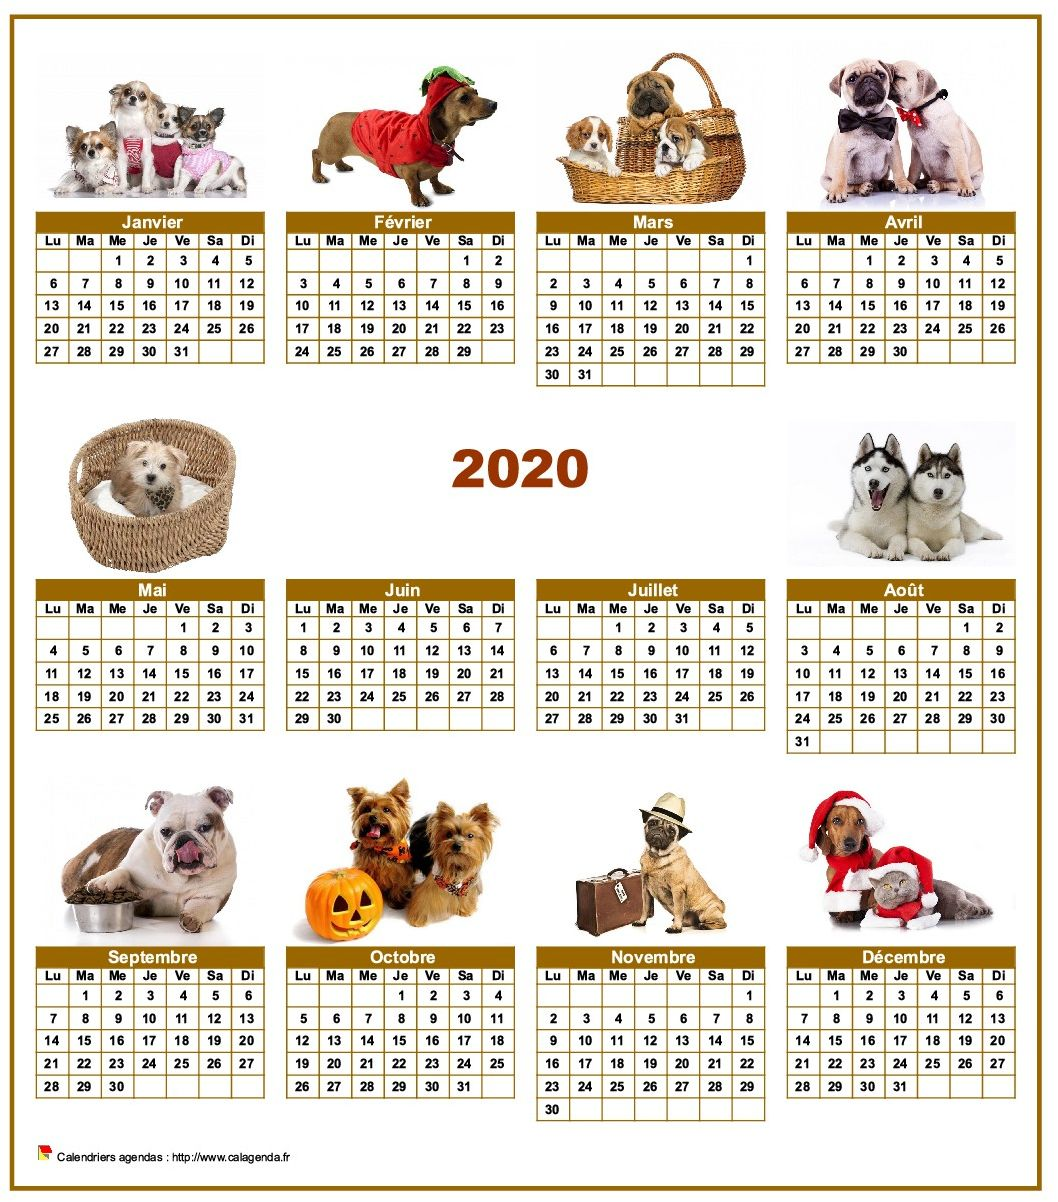 Calendrier 2020 Animaux.Calendrier 2020 Annuel Special Chiens Avec 10 Photos